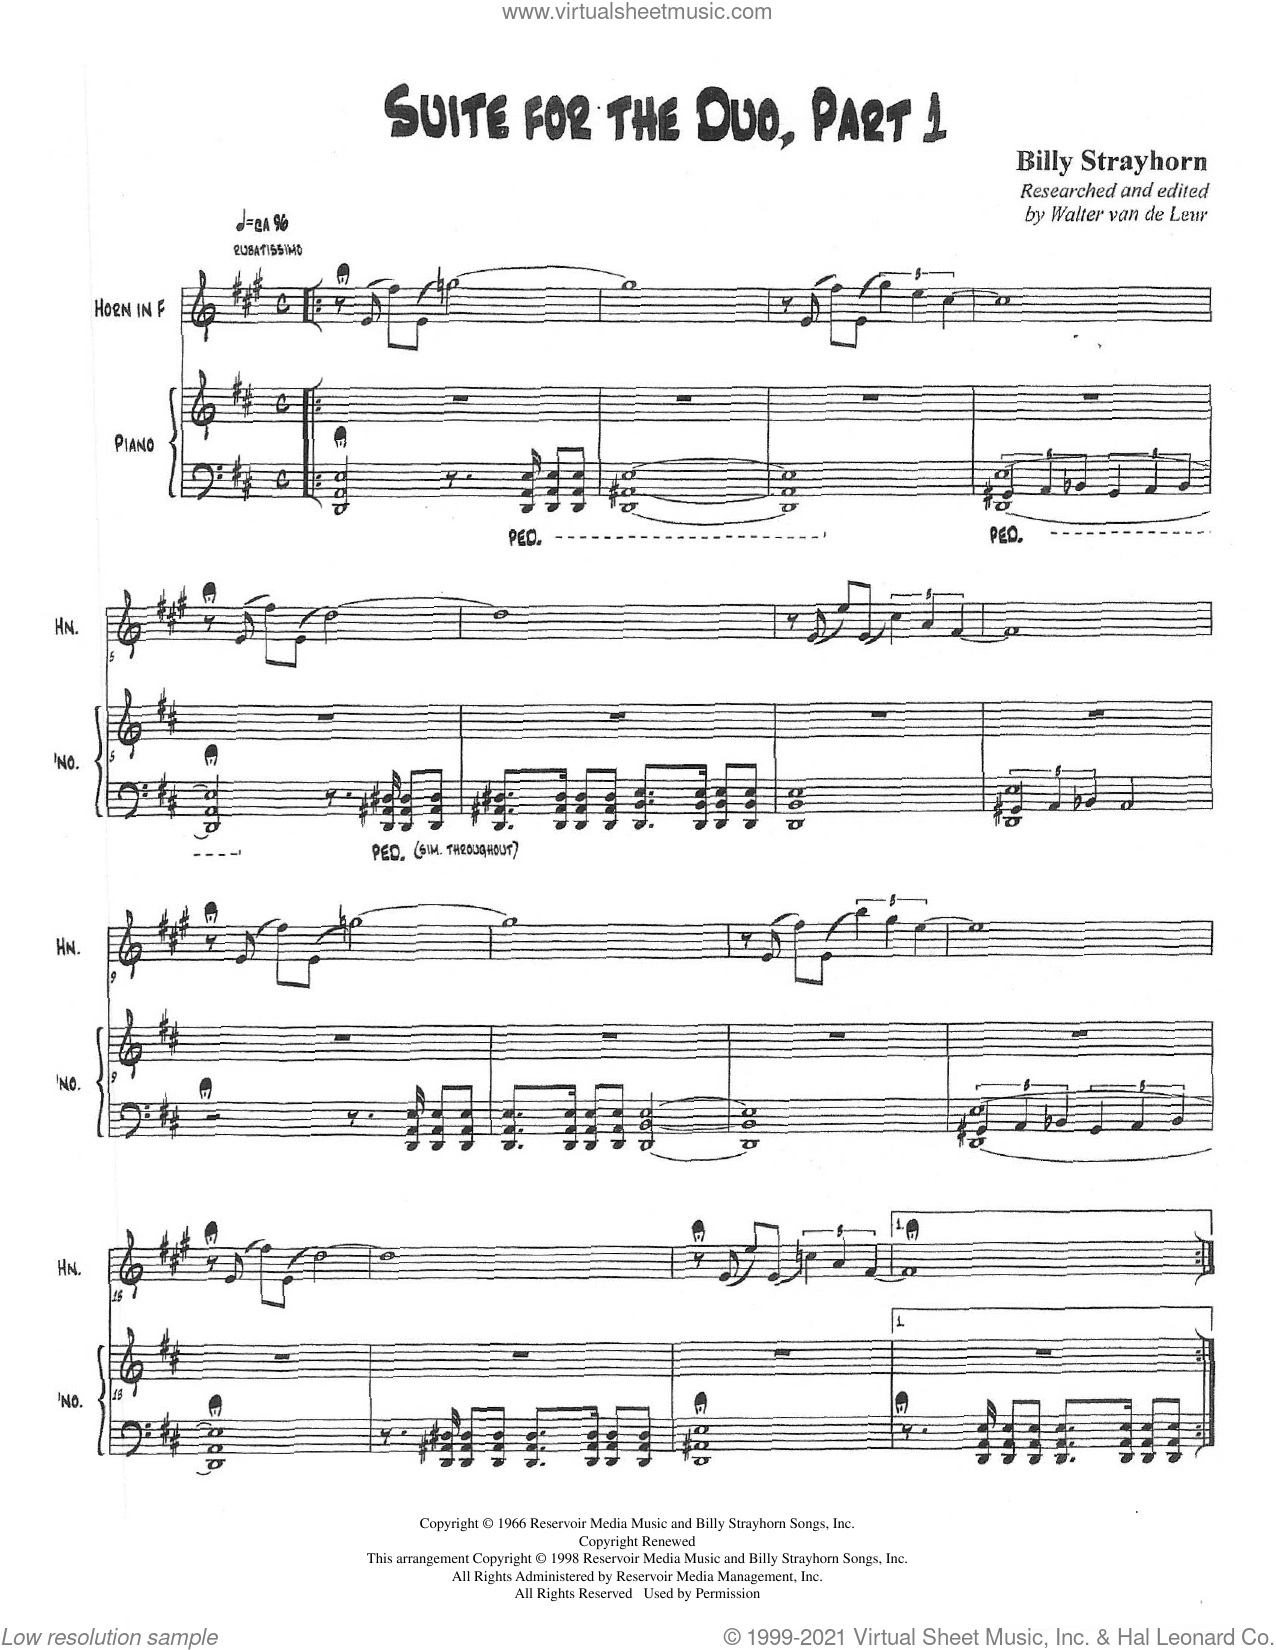 Suite For The Duo (Parts 1-3) sheet music for horn and piano (french horn) by Billy Strayhorn and Walter van de Leur, intermediate skill level